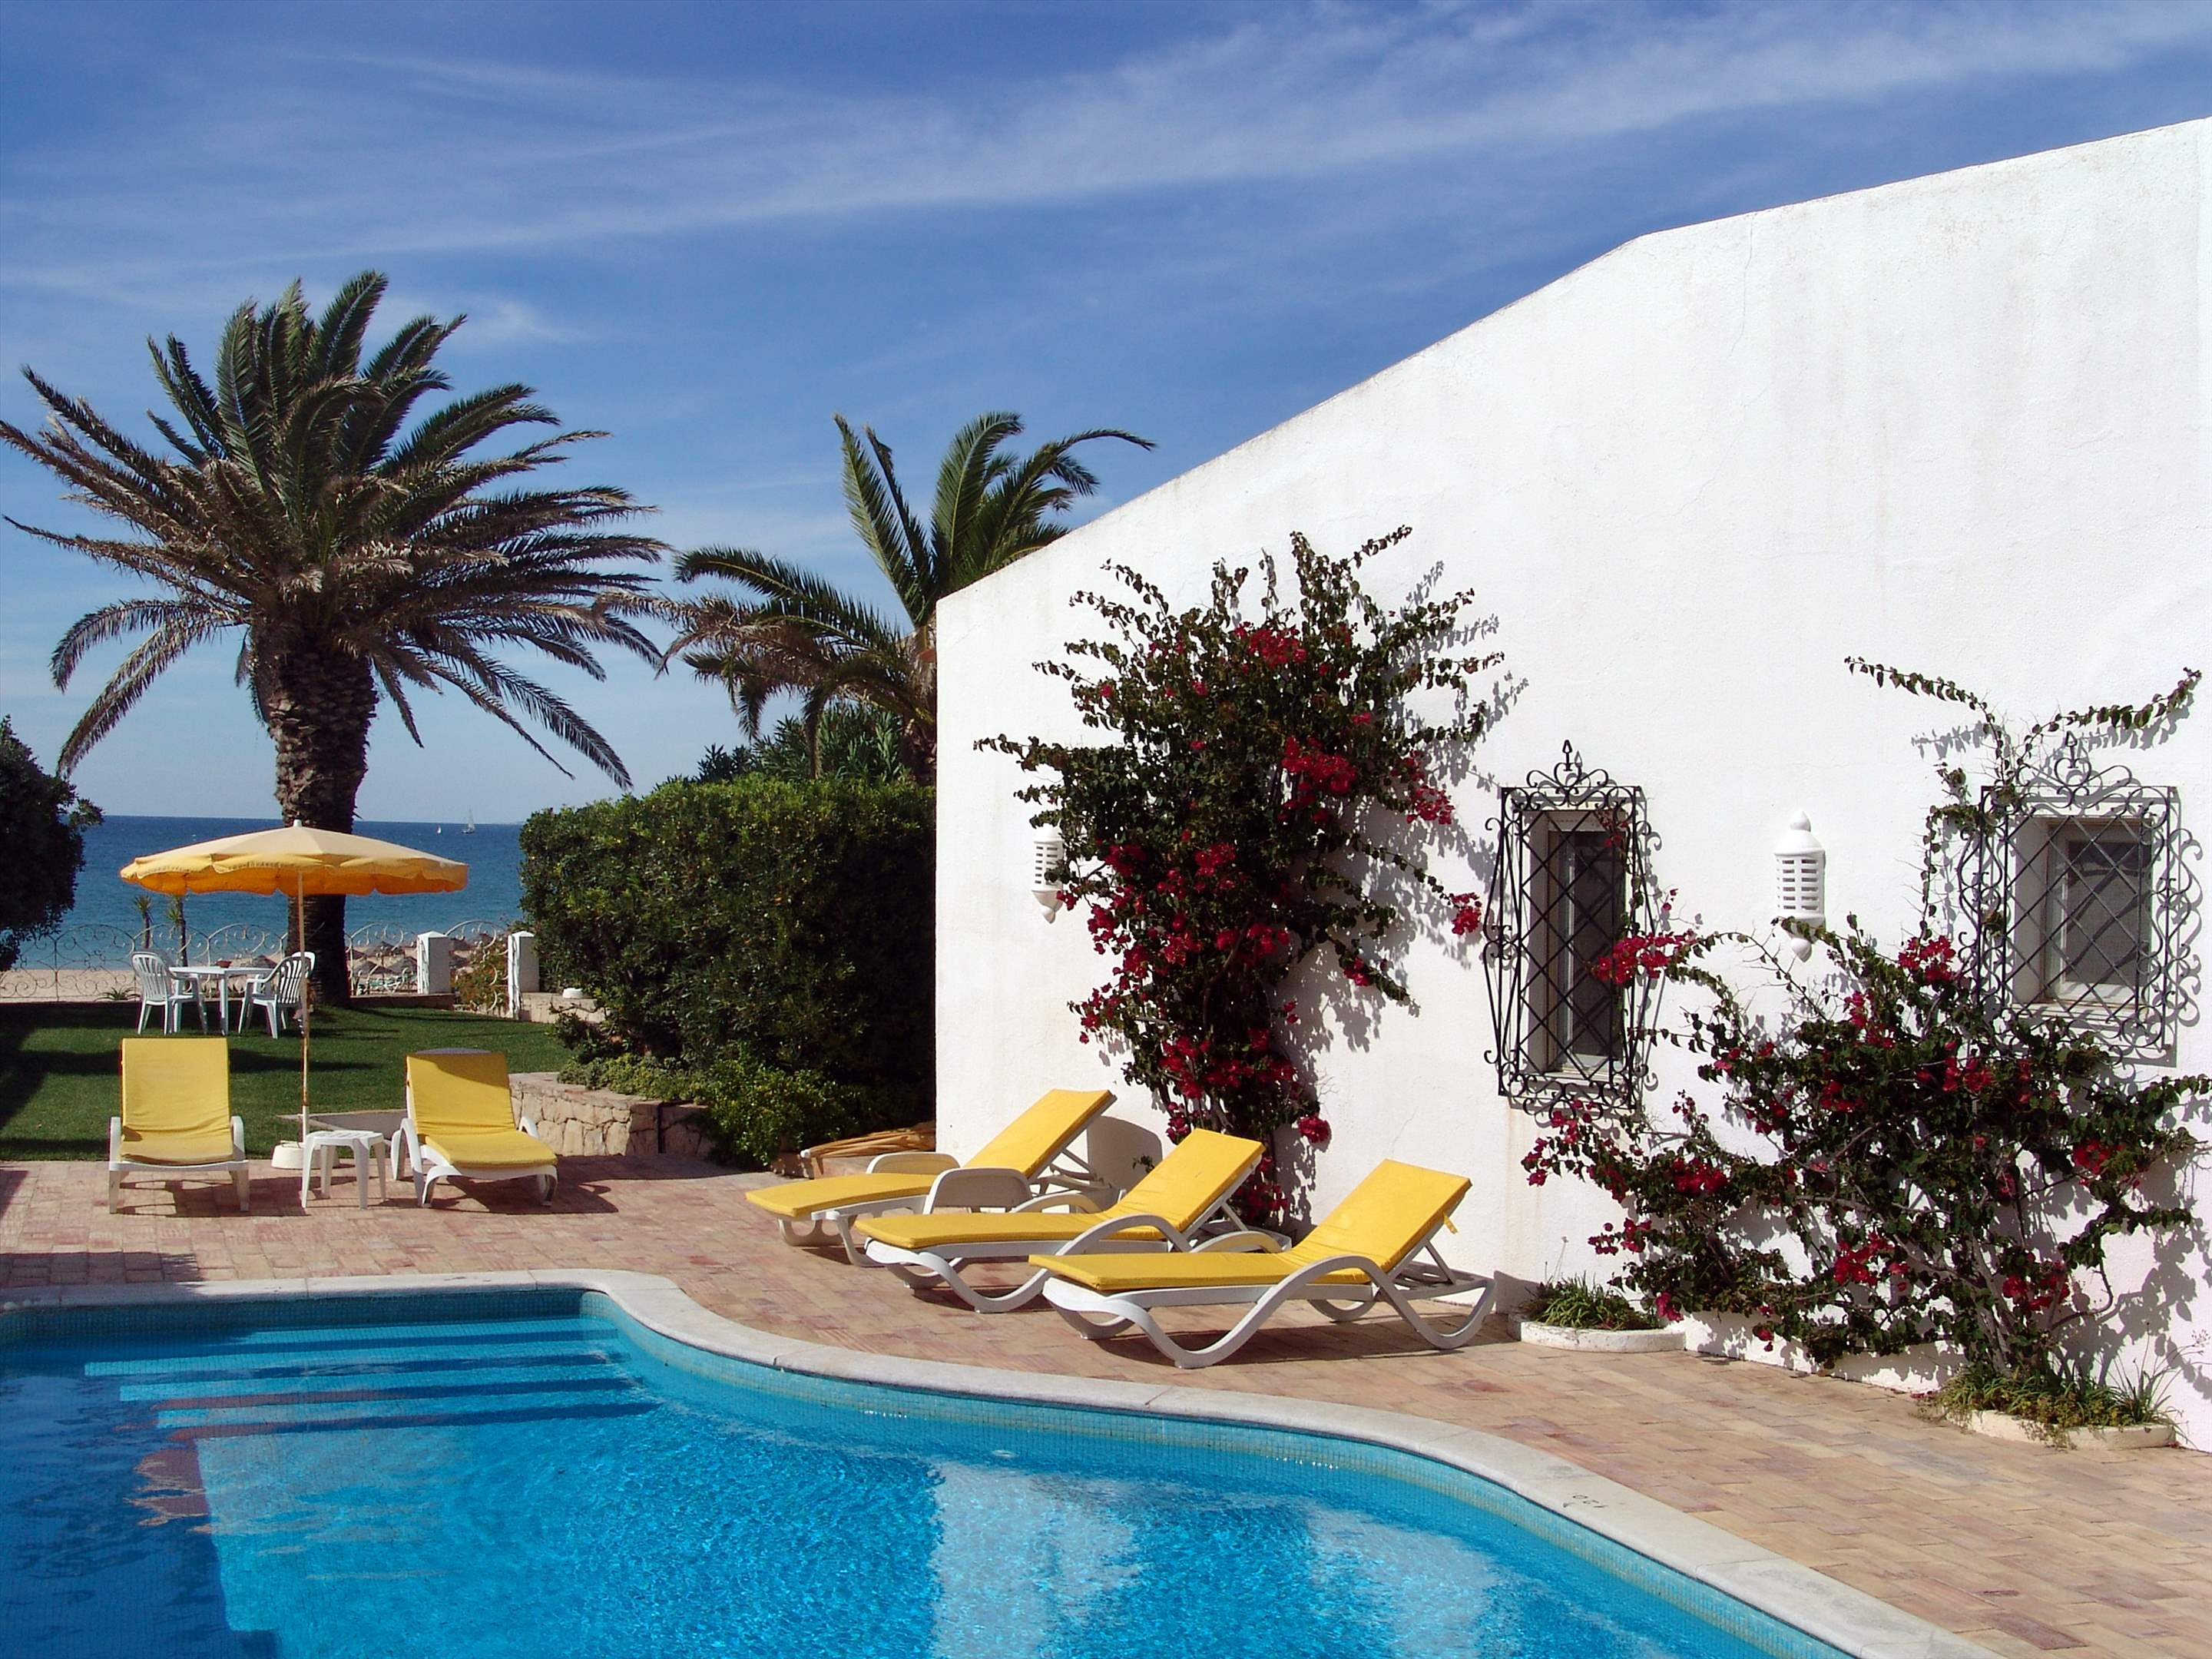 Villa Casa da Sereia, 3 bedroom villa in Vale do Lobo, Algarve Photo #20